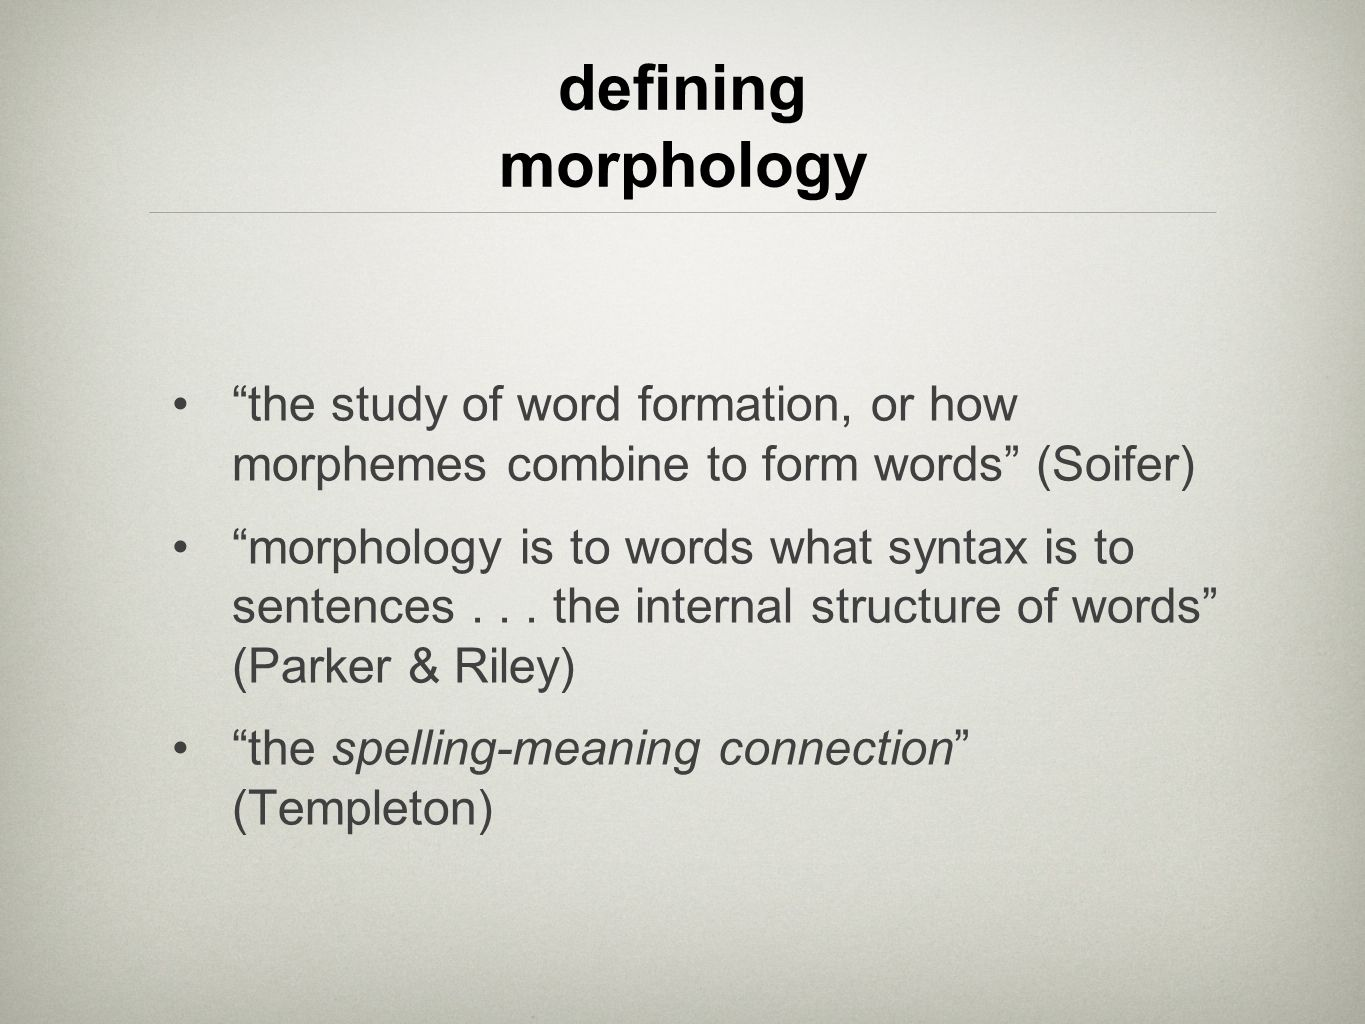 defining morphology the study of word formation, or how morphemes combine to form words (Soifer)